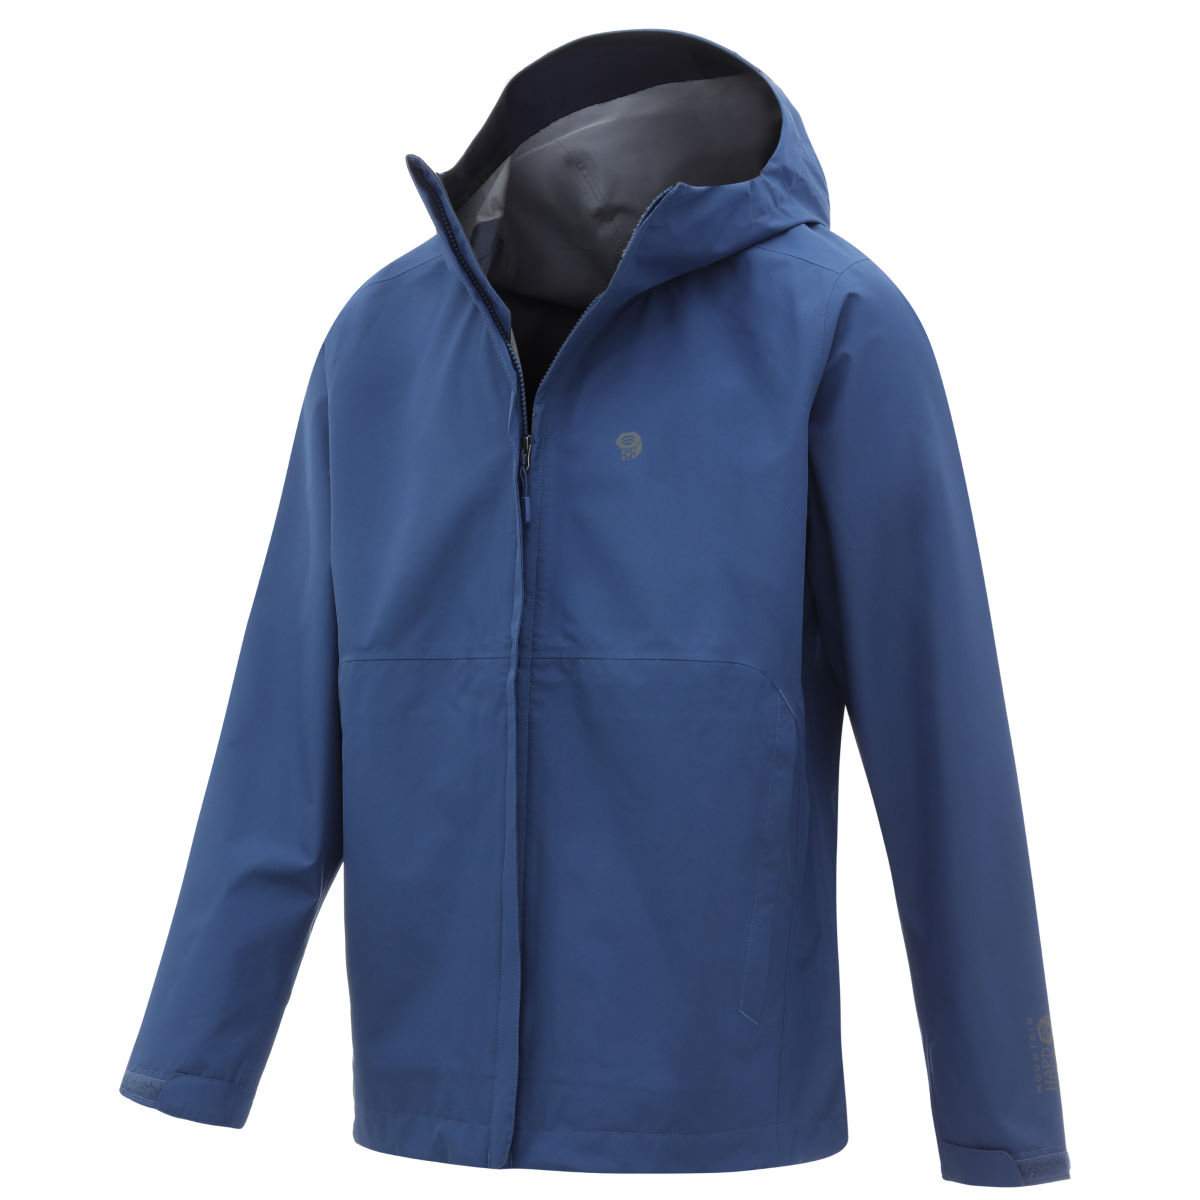 Mountain Hardwear Mountain Hardwear Exposure/2™ Gore-Tex® Paclite Jacket   Jackets